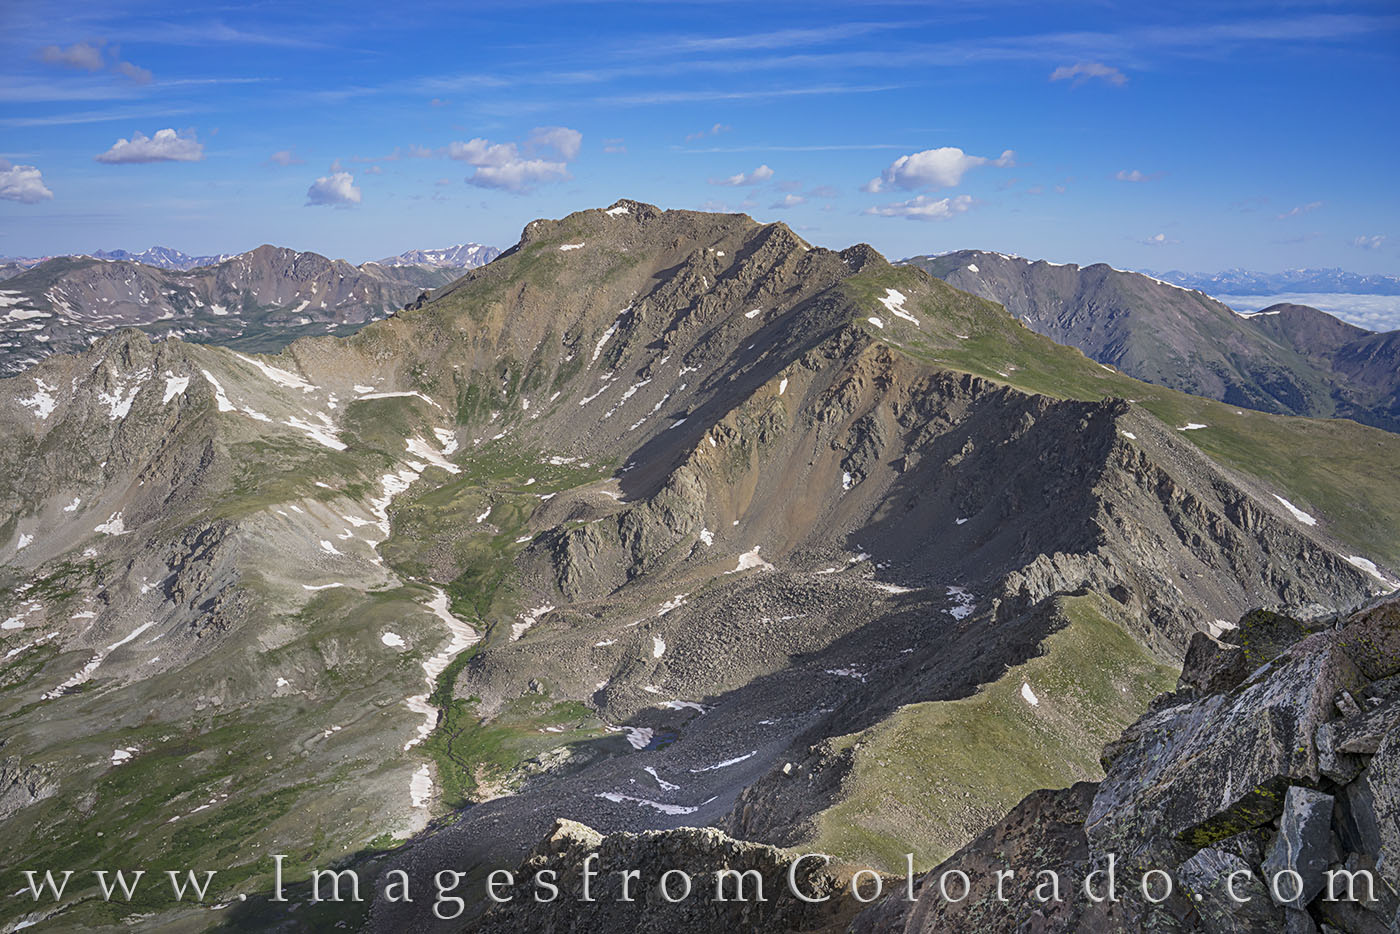 harvard, columbia, mount harvard, mount columbia, 14ers, buena vista, sawatch, rockies, hiking, summer, peaks, summits, photo